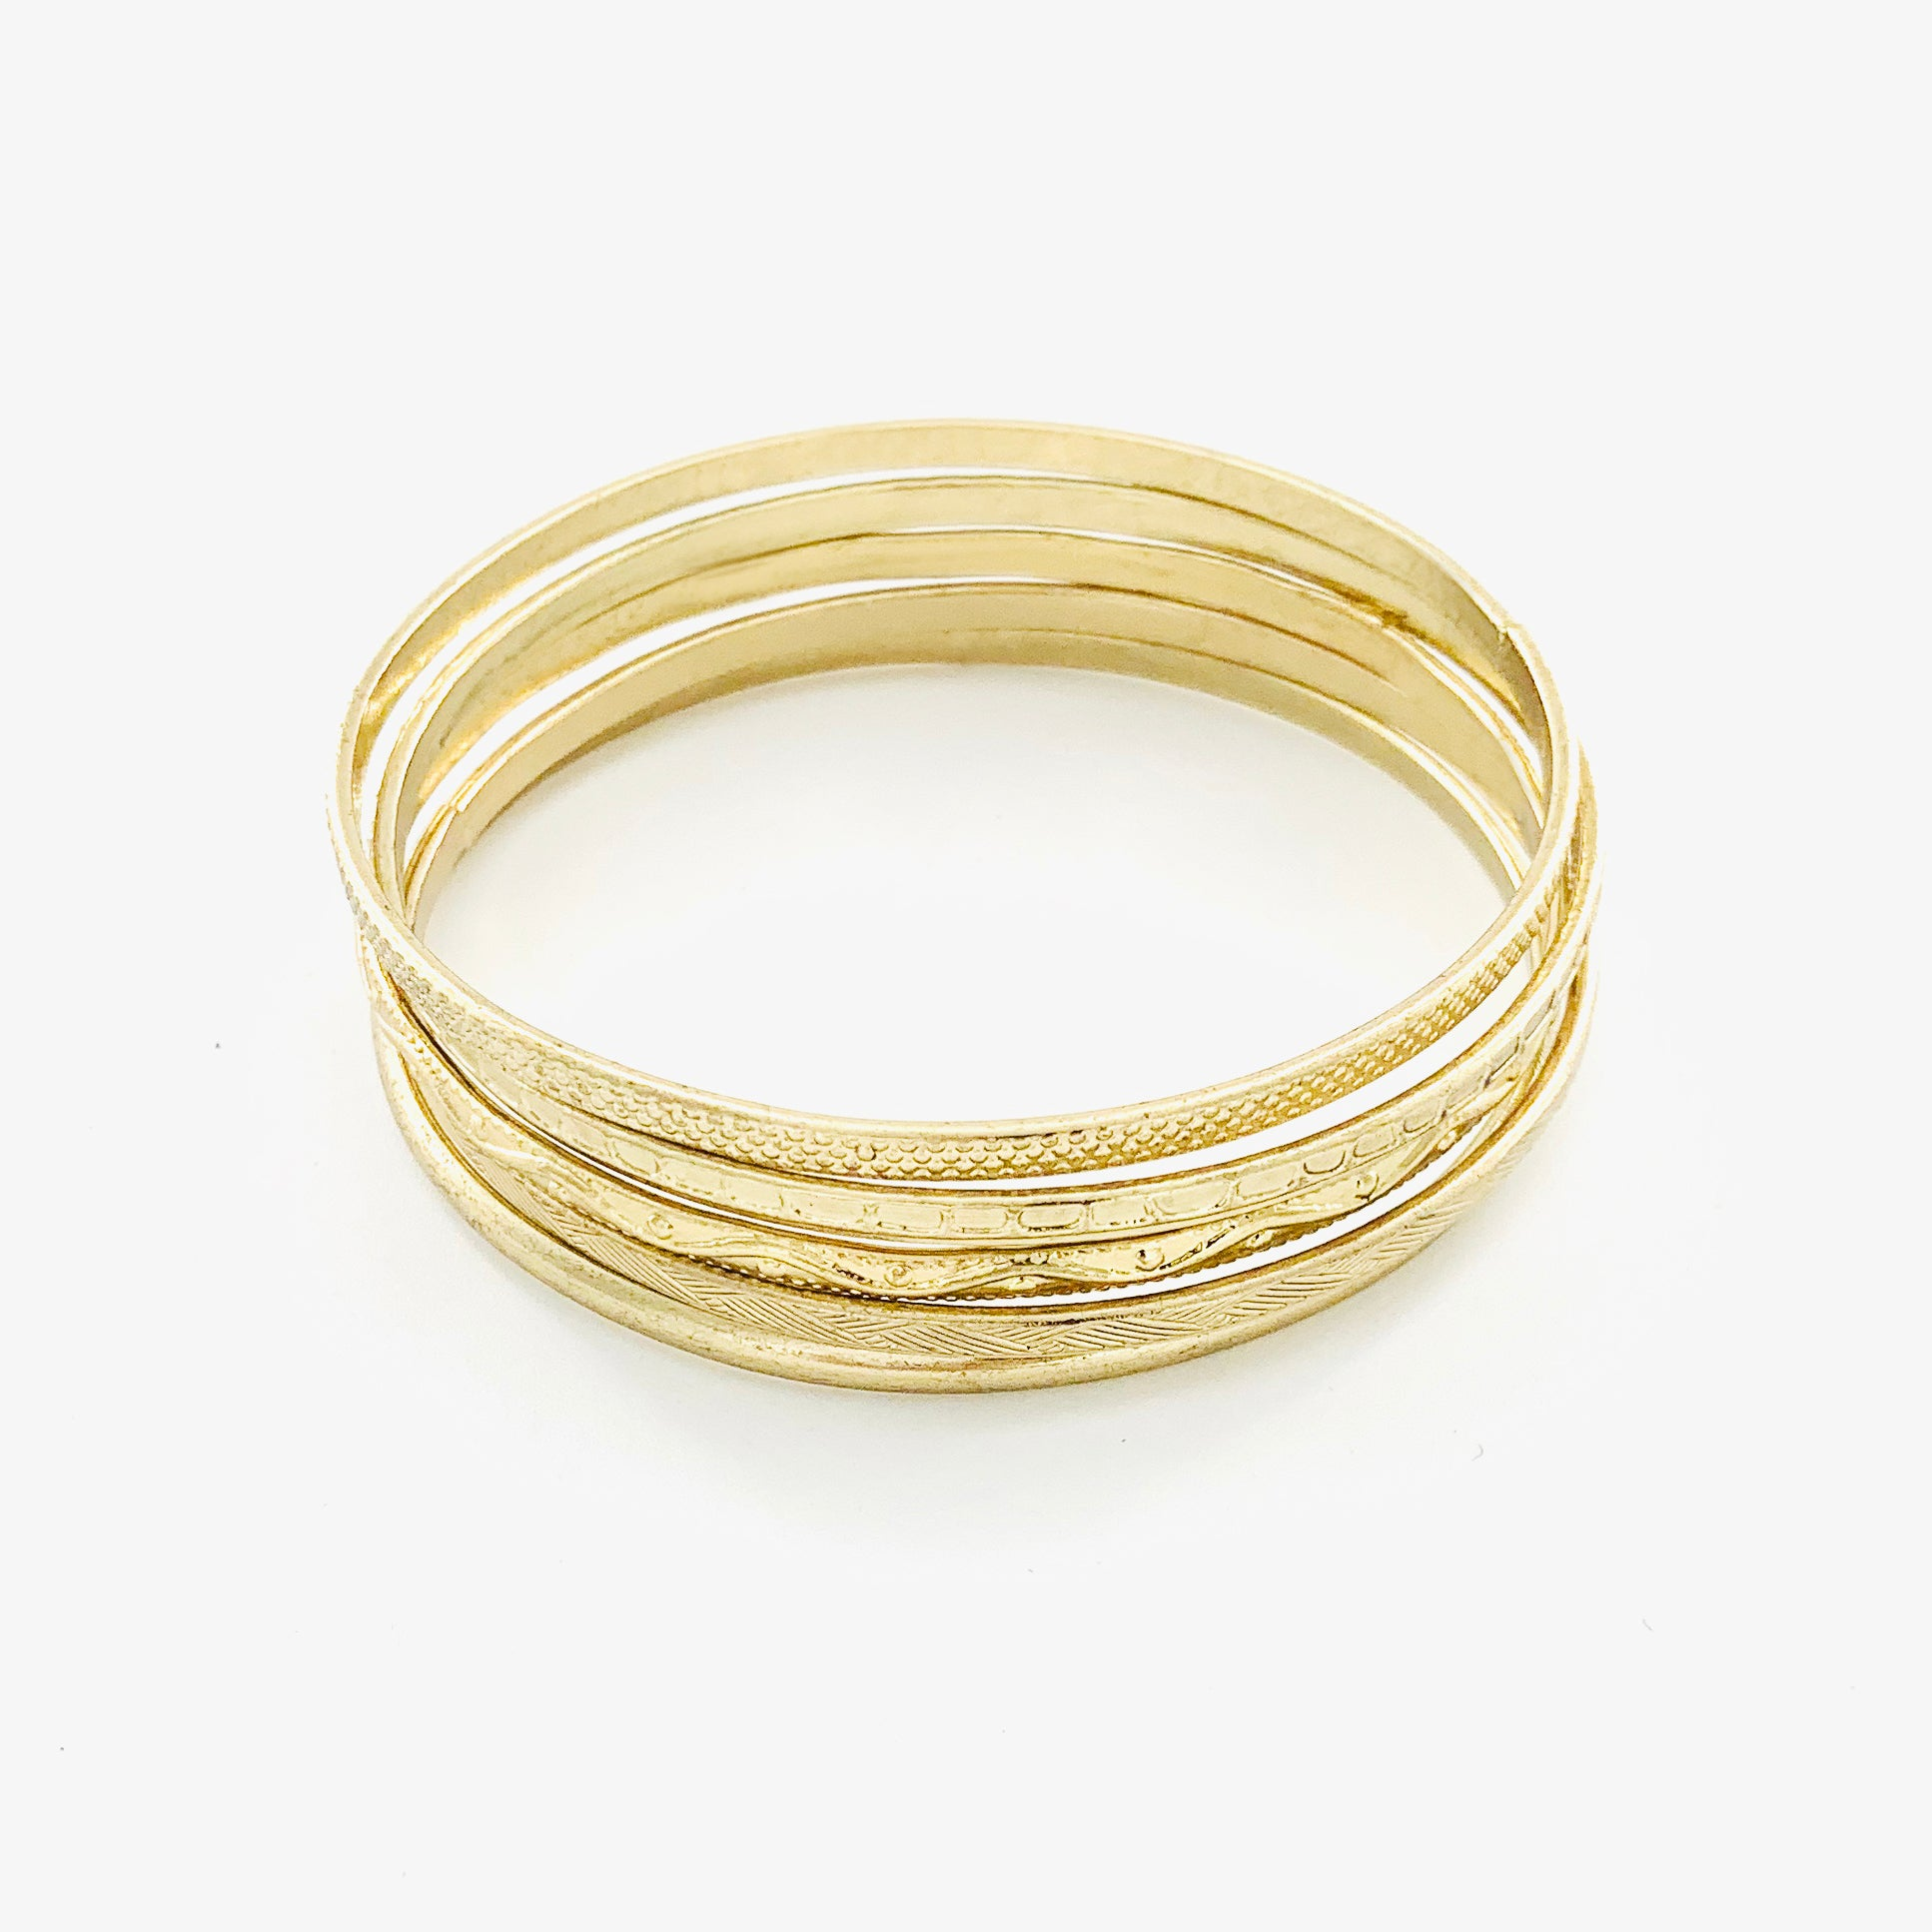 Thin gold bangles with textured patterns